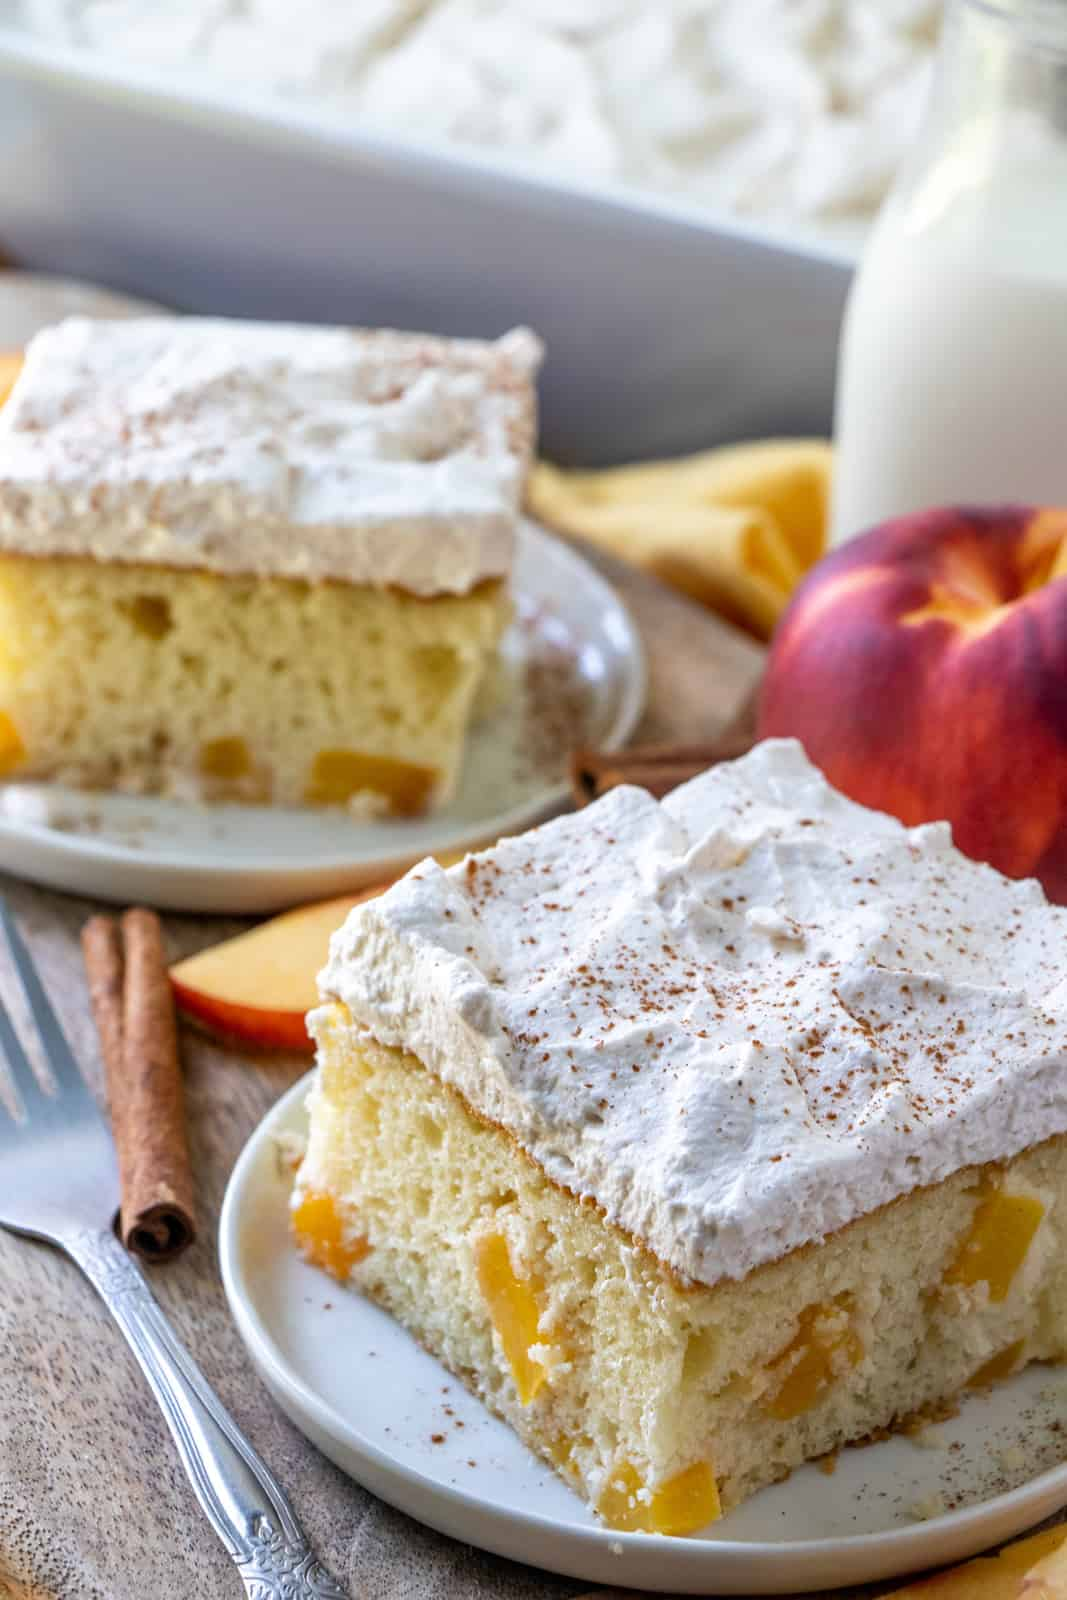 Two slices of cake on white plates with peach and peach slices garnishing around cake